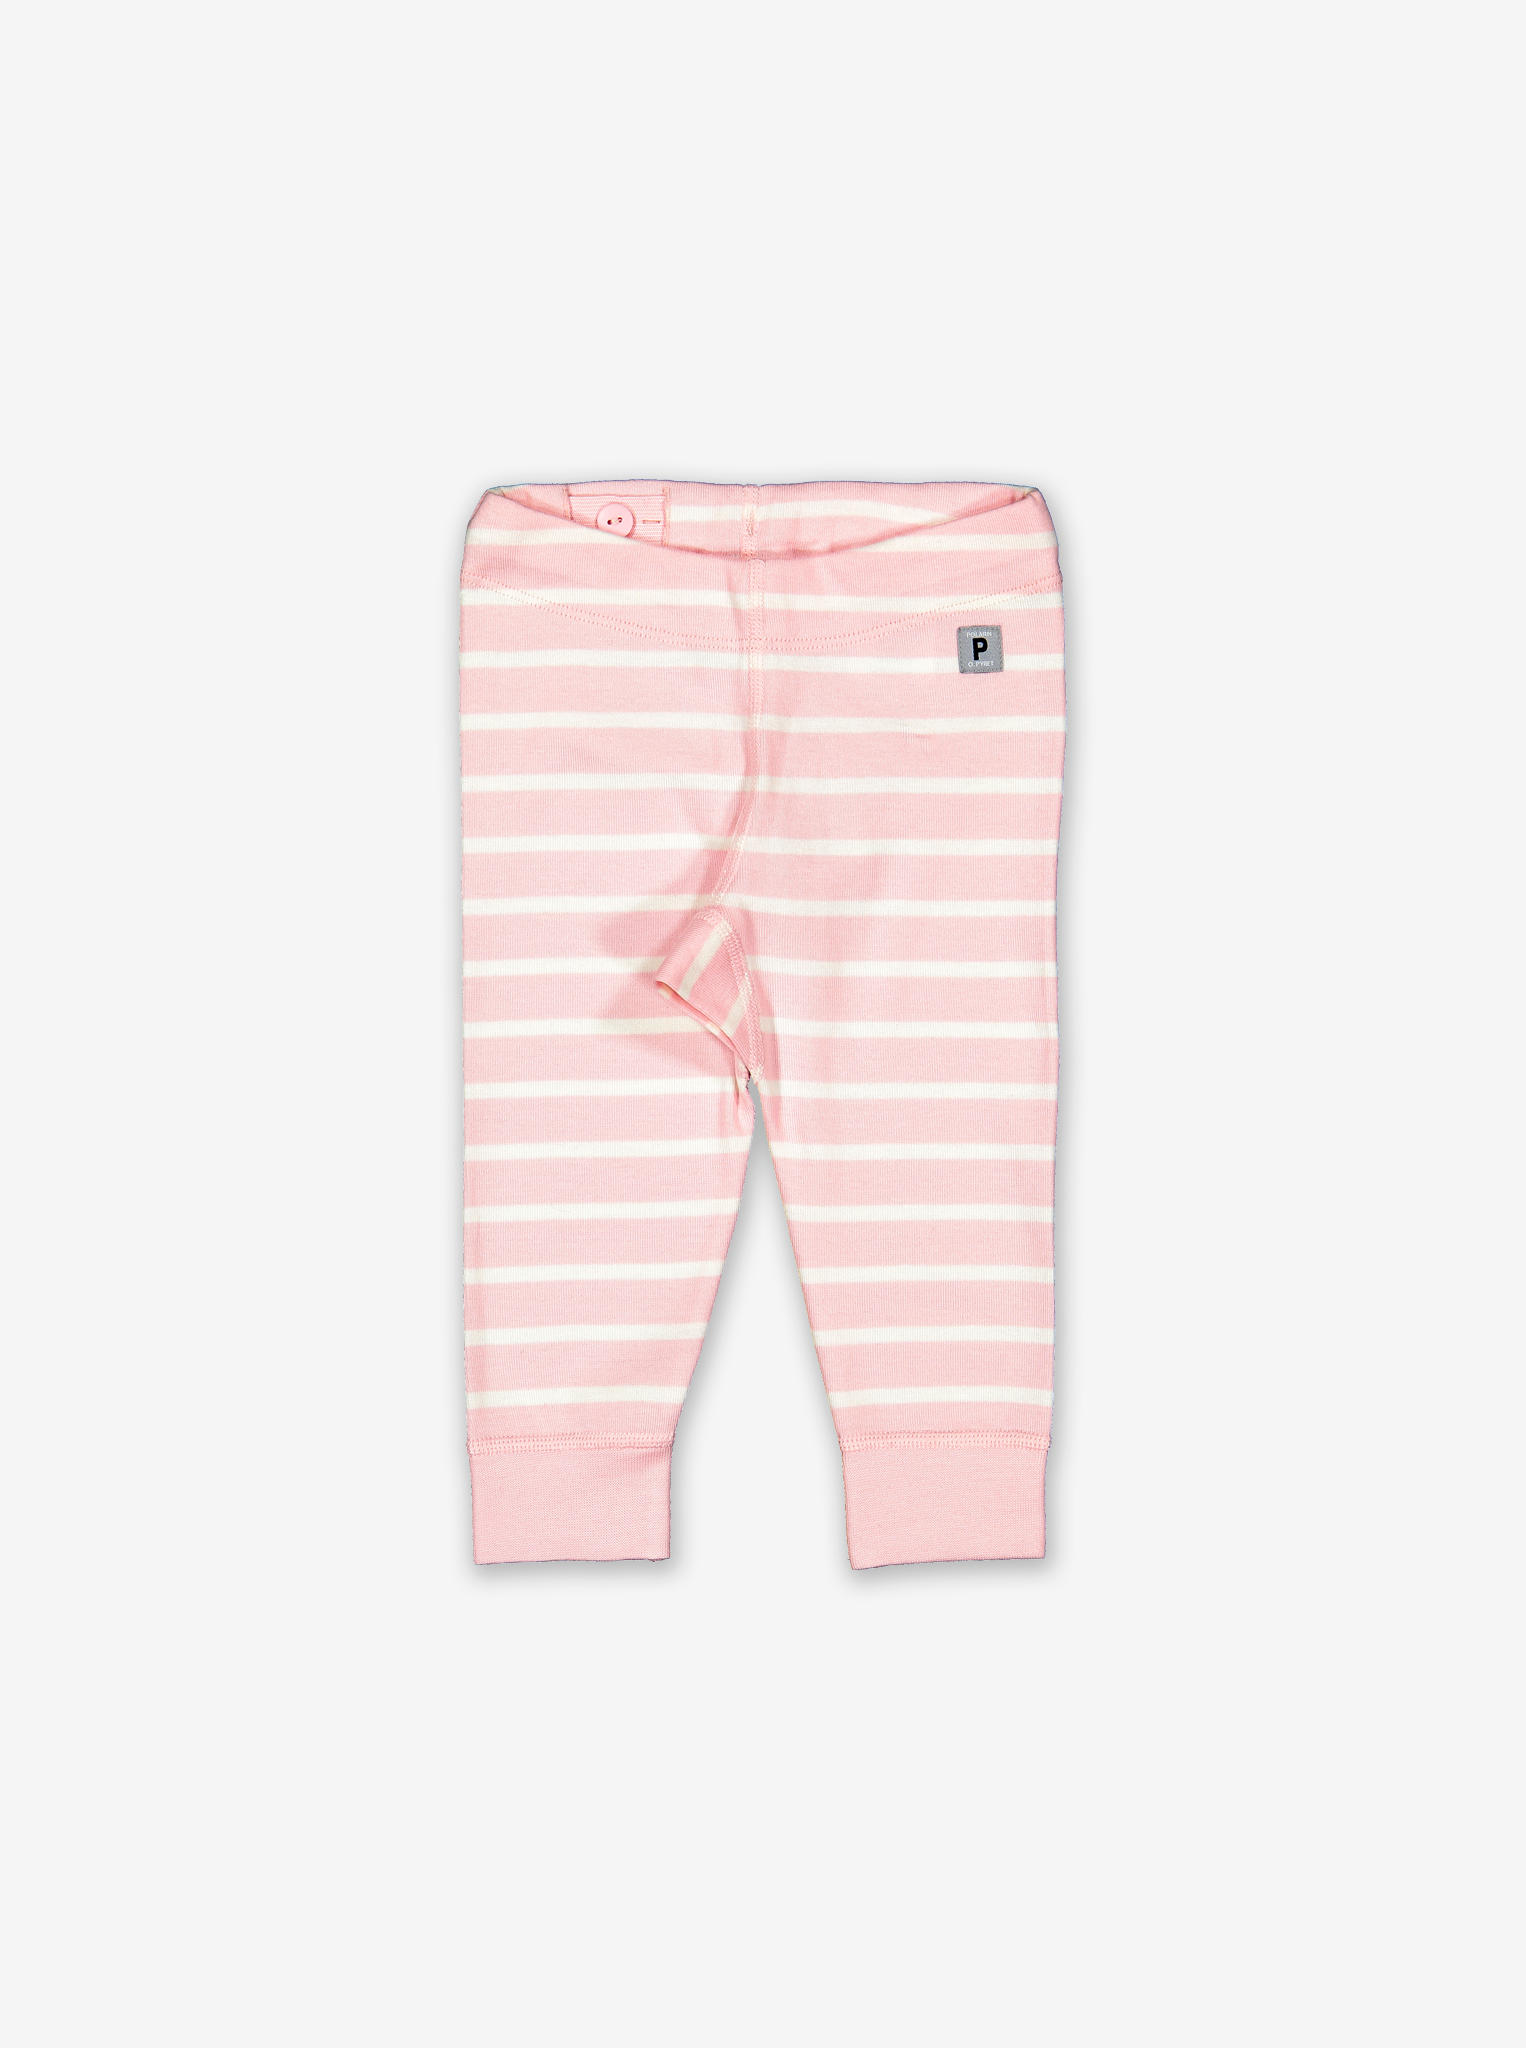 Striped Baby Leggings-Girl-0-1y-Pink